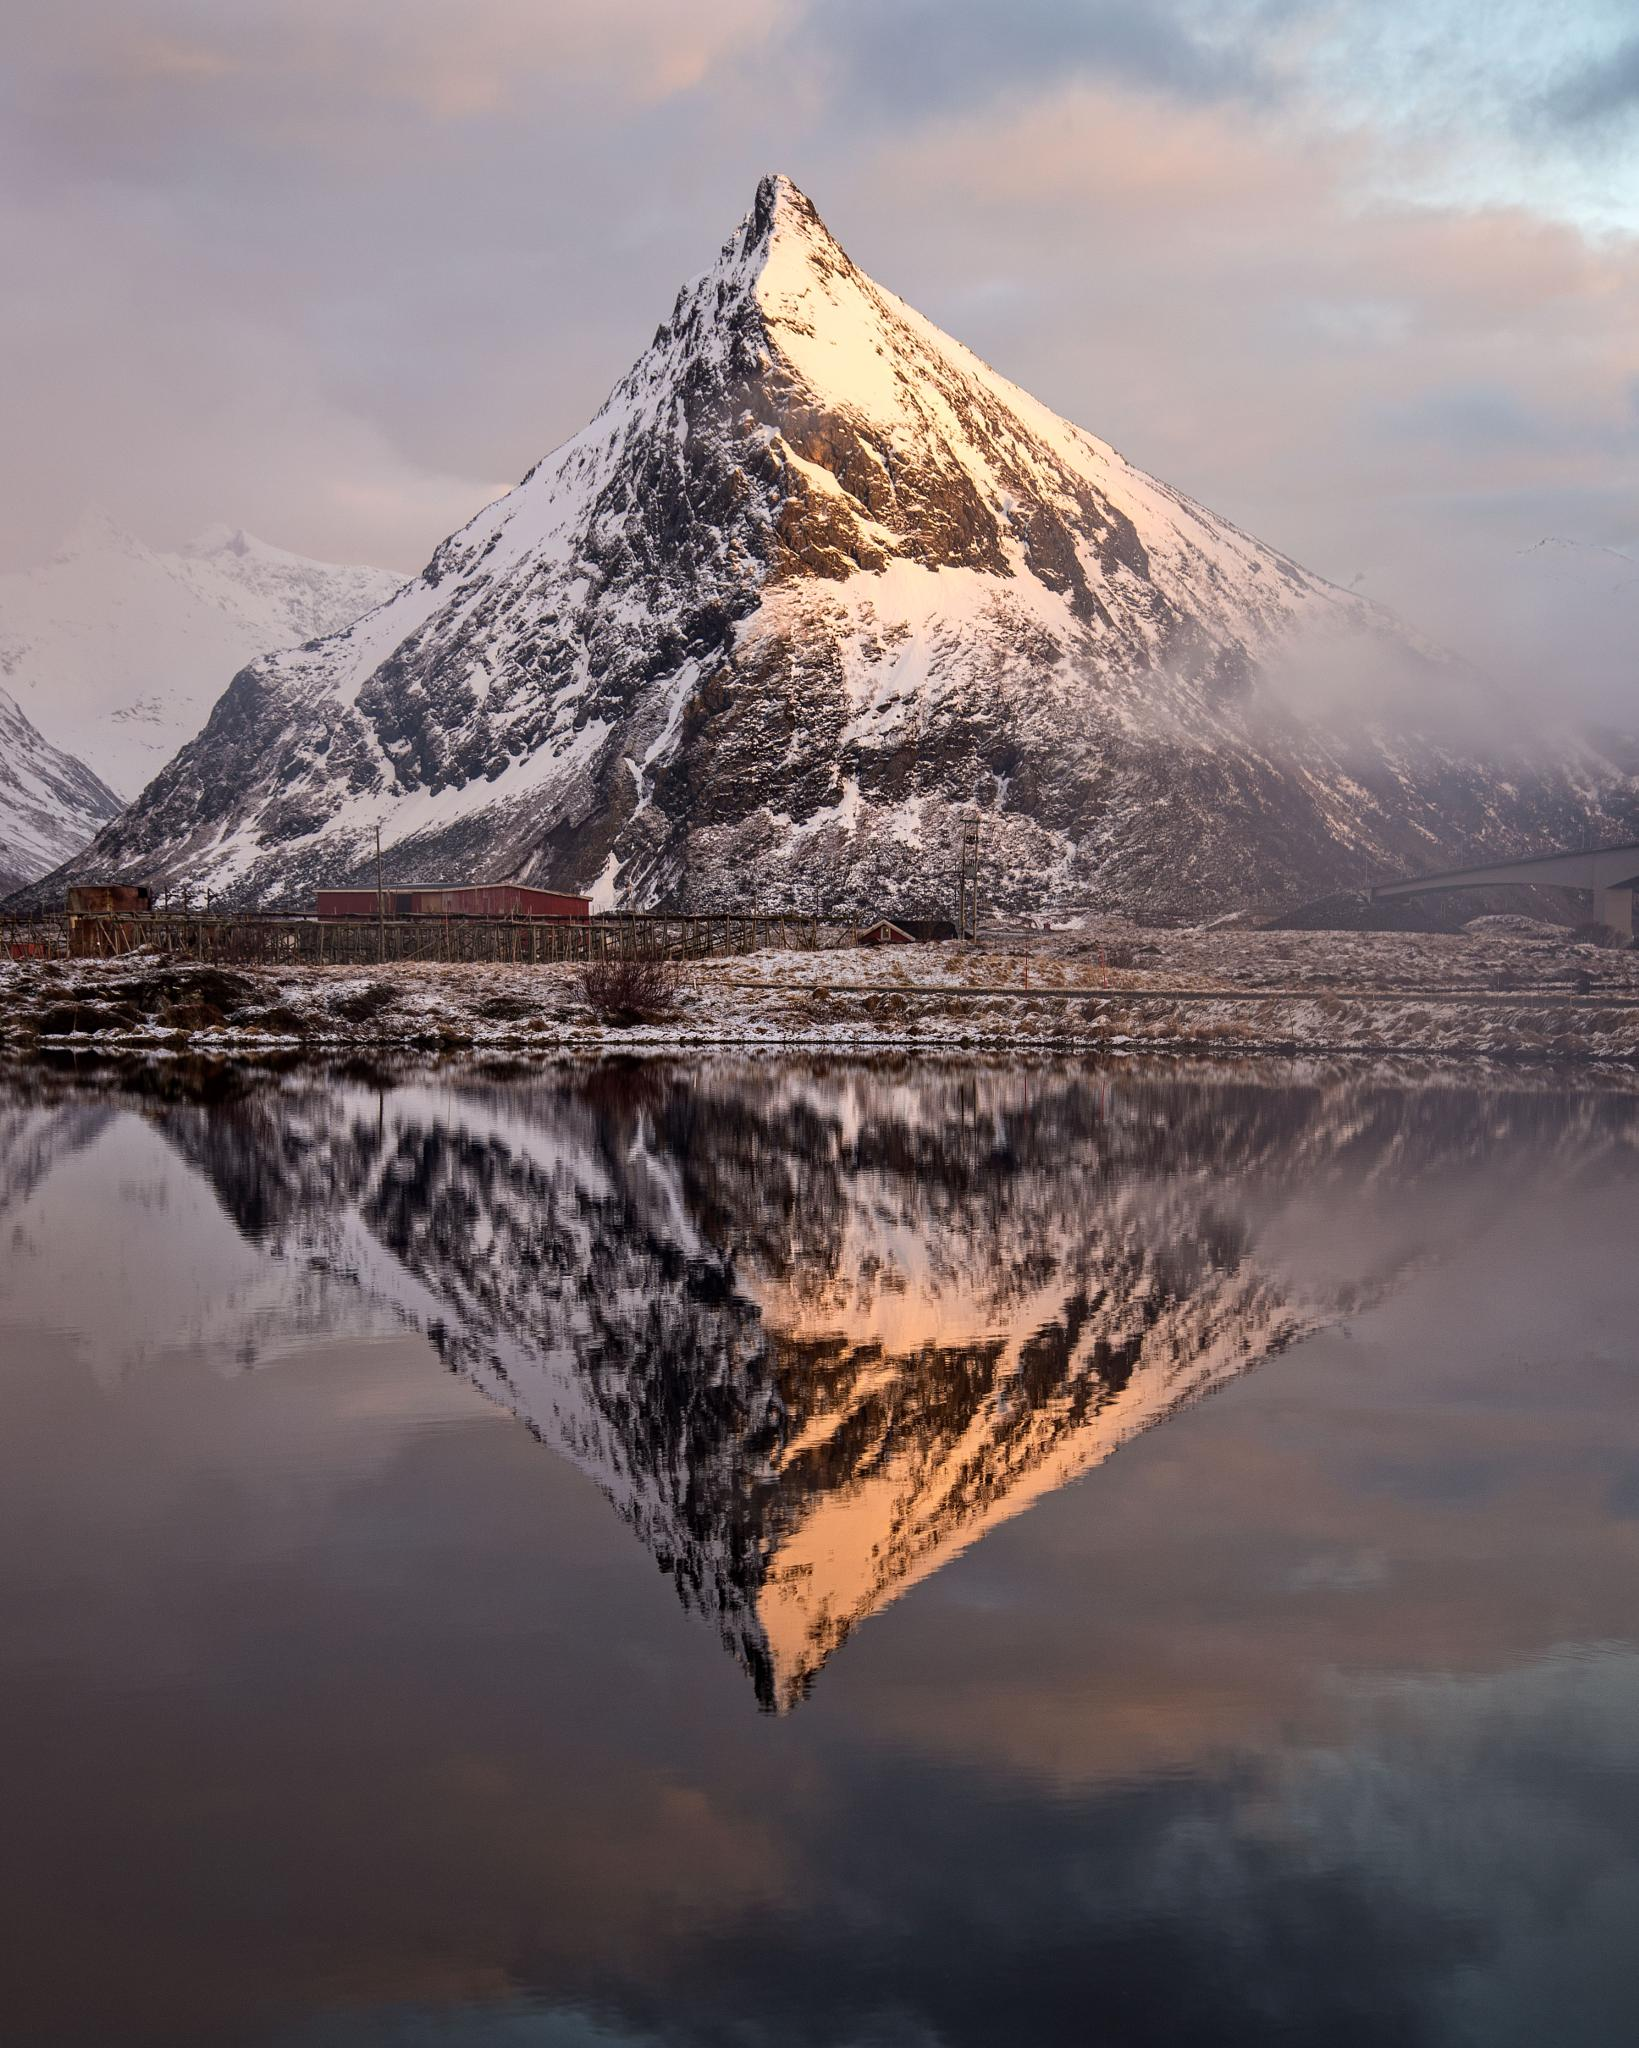 Reflection in water, Fredvang in Lofoten by catoh2